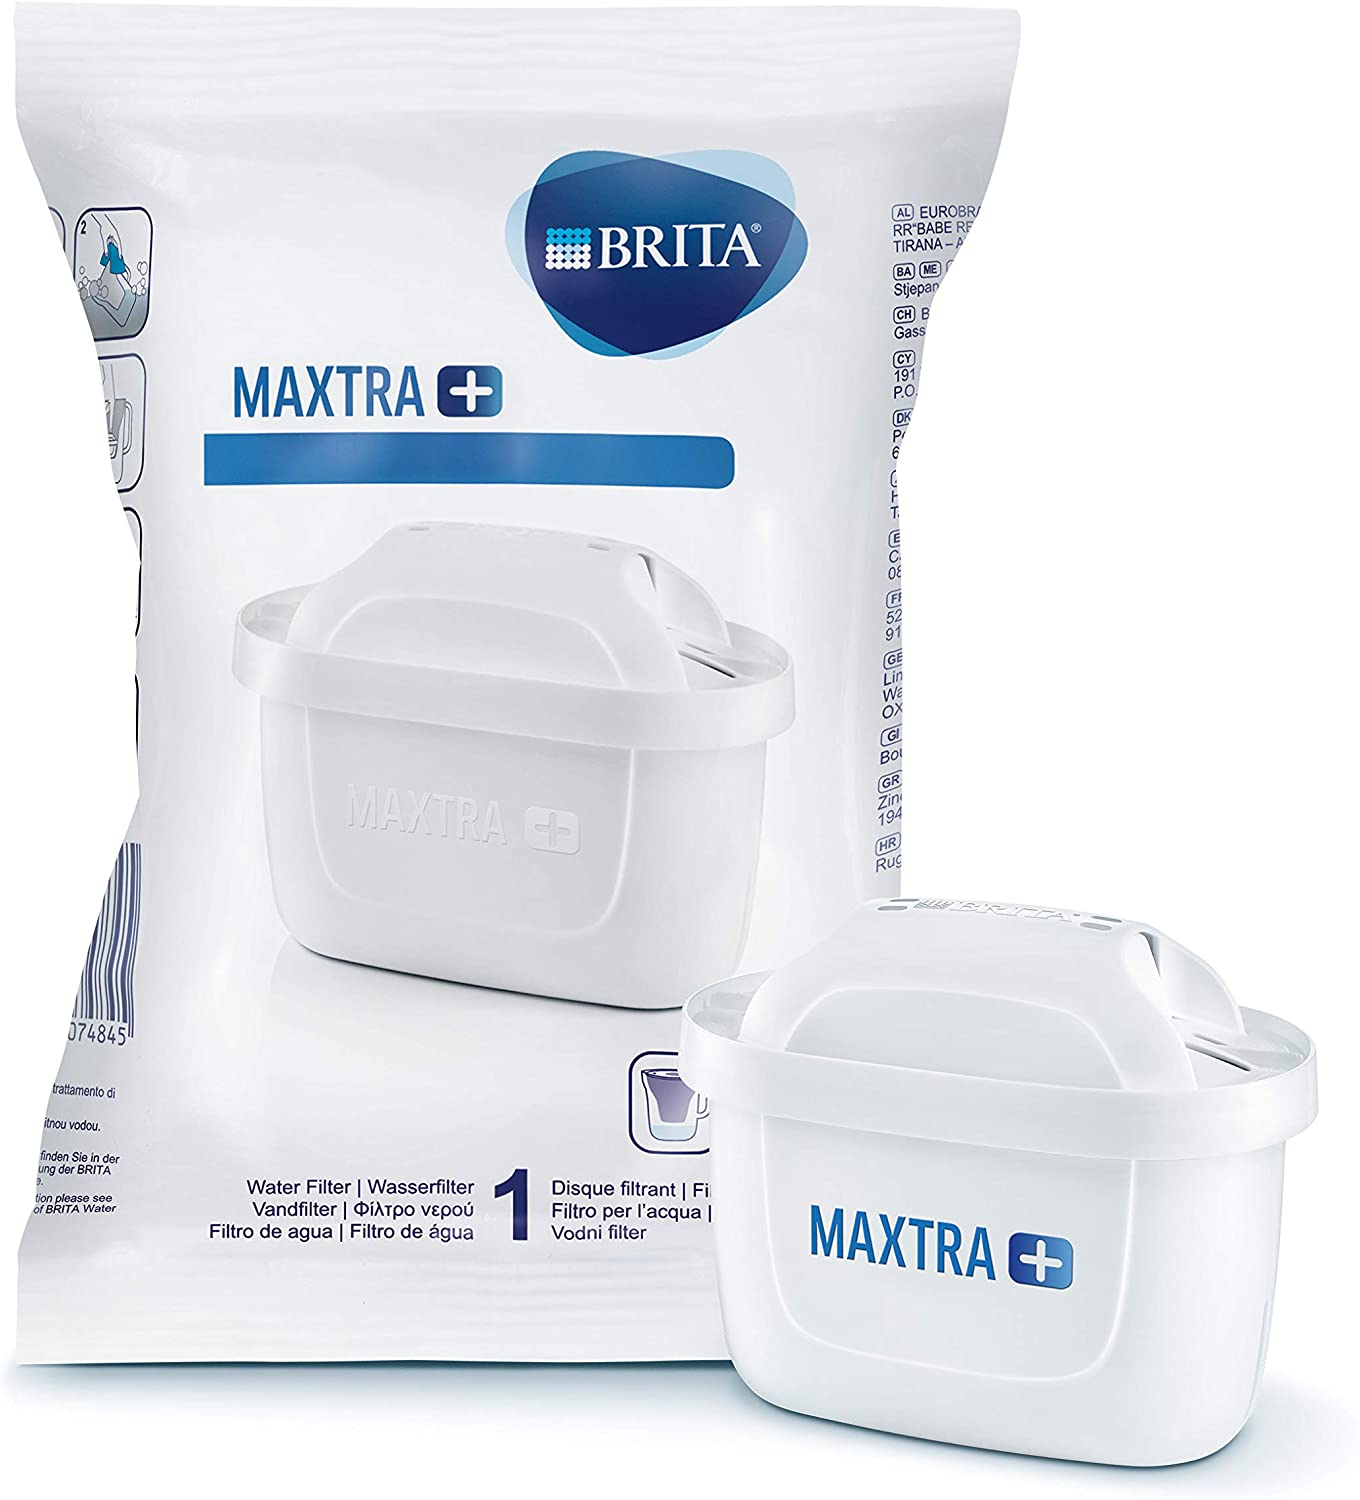 BRITA MAXTRA+ water filter cartridges - 1 pack